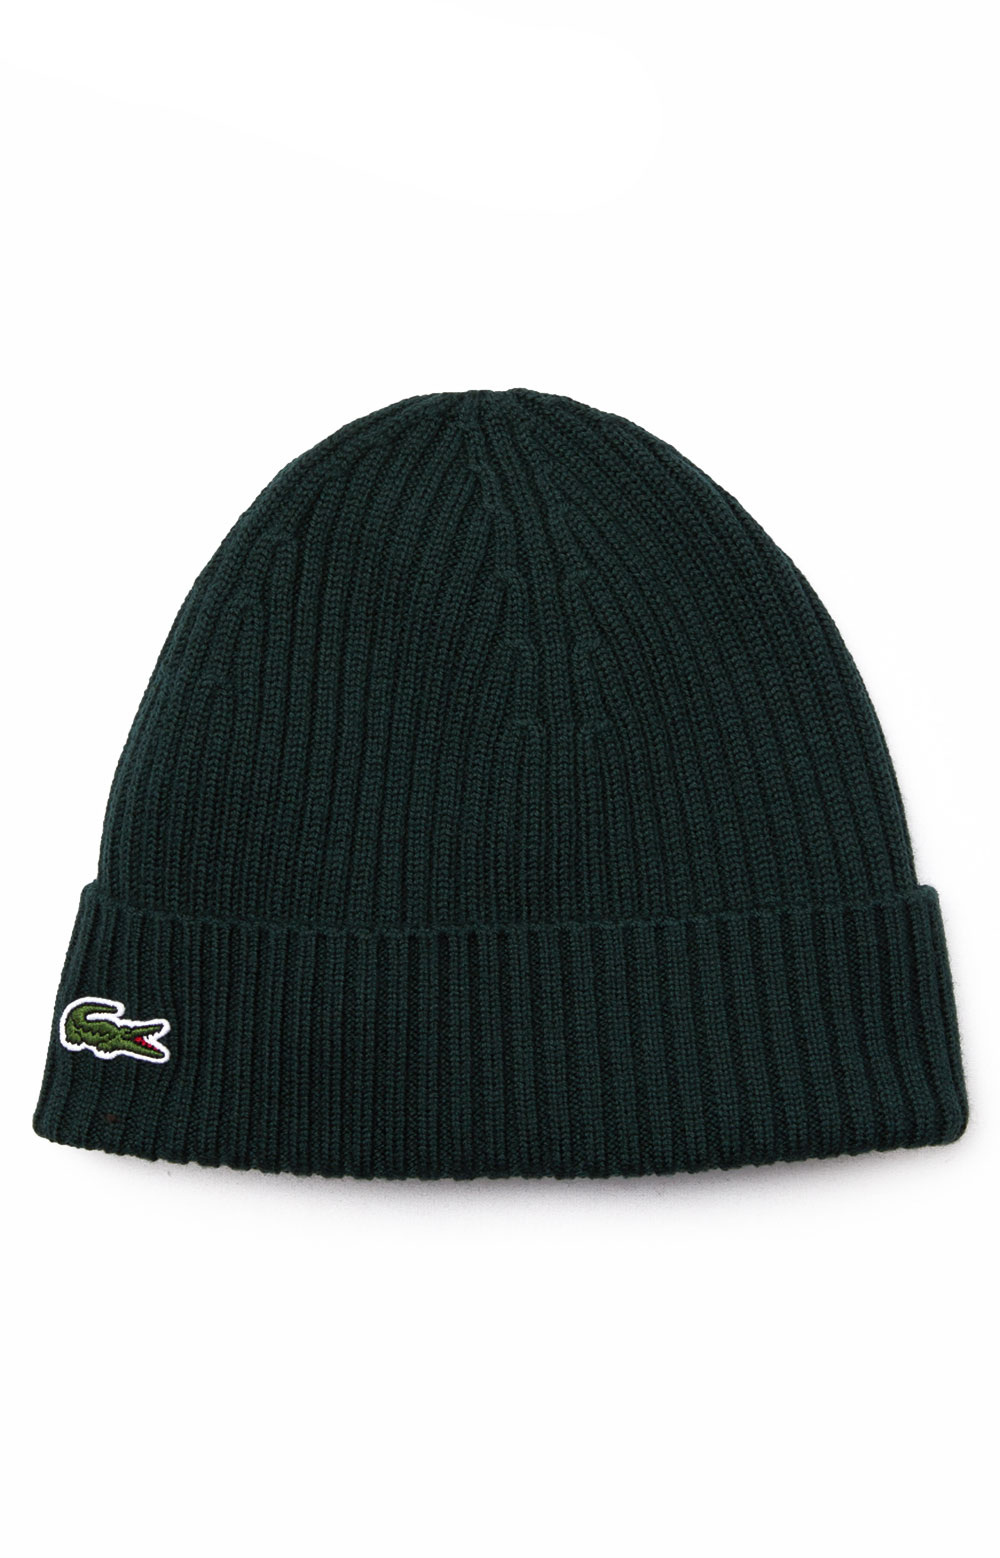 Ribbed Wool Beanie - Green